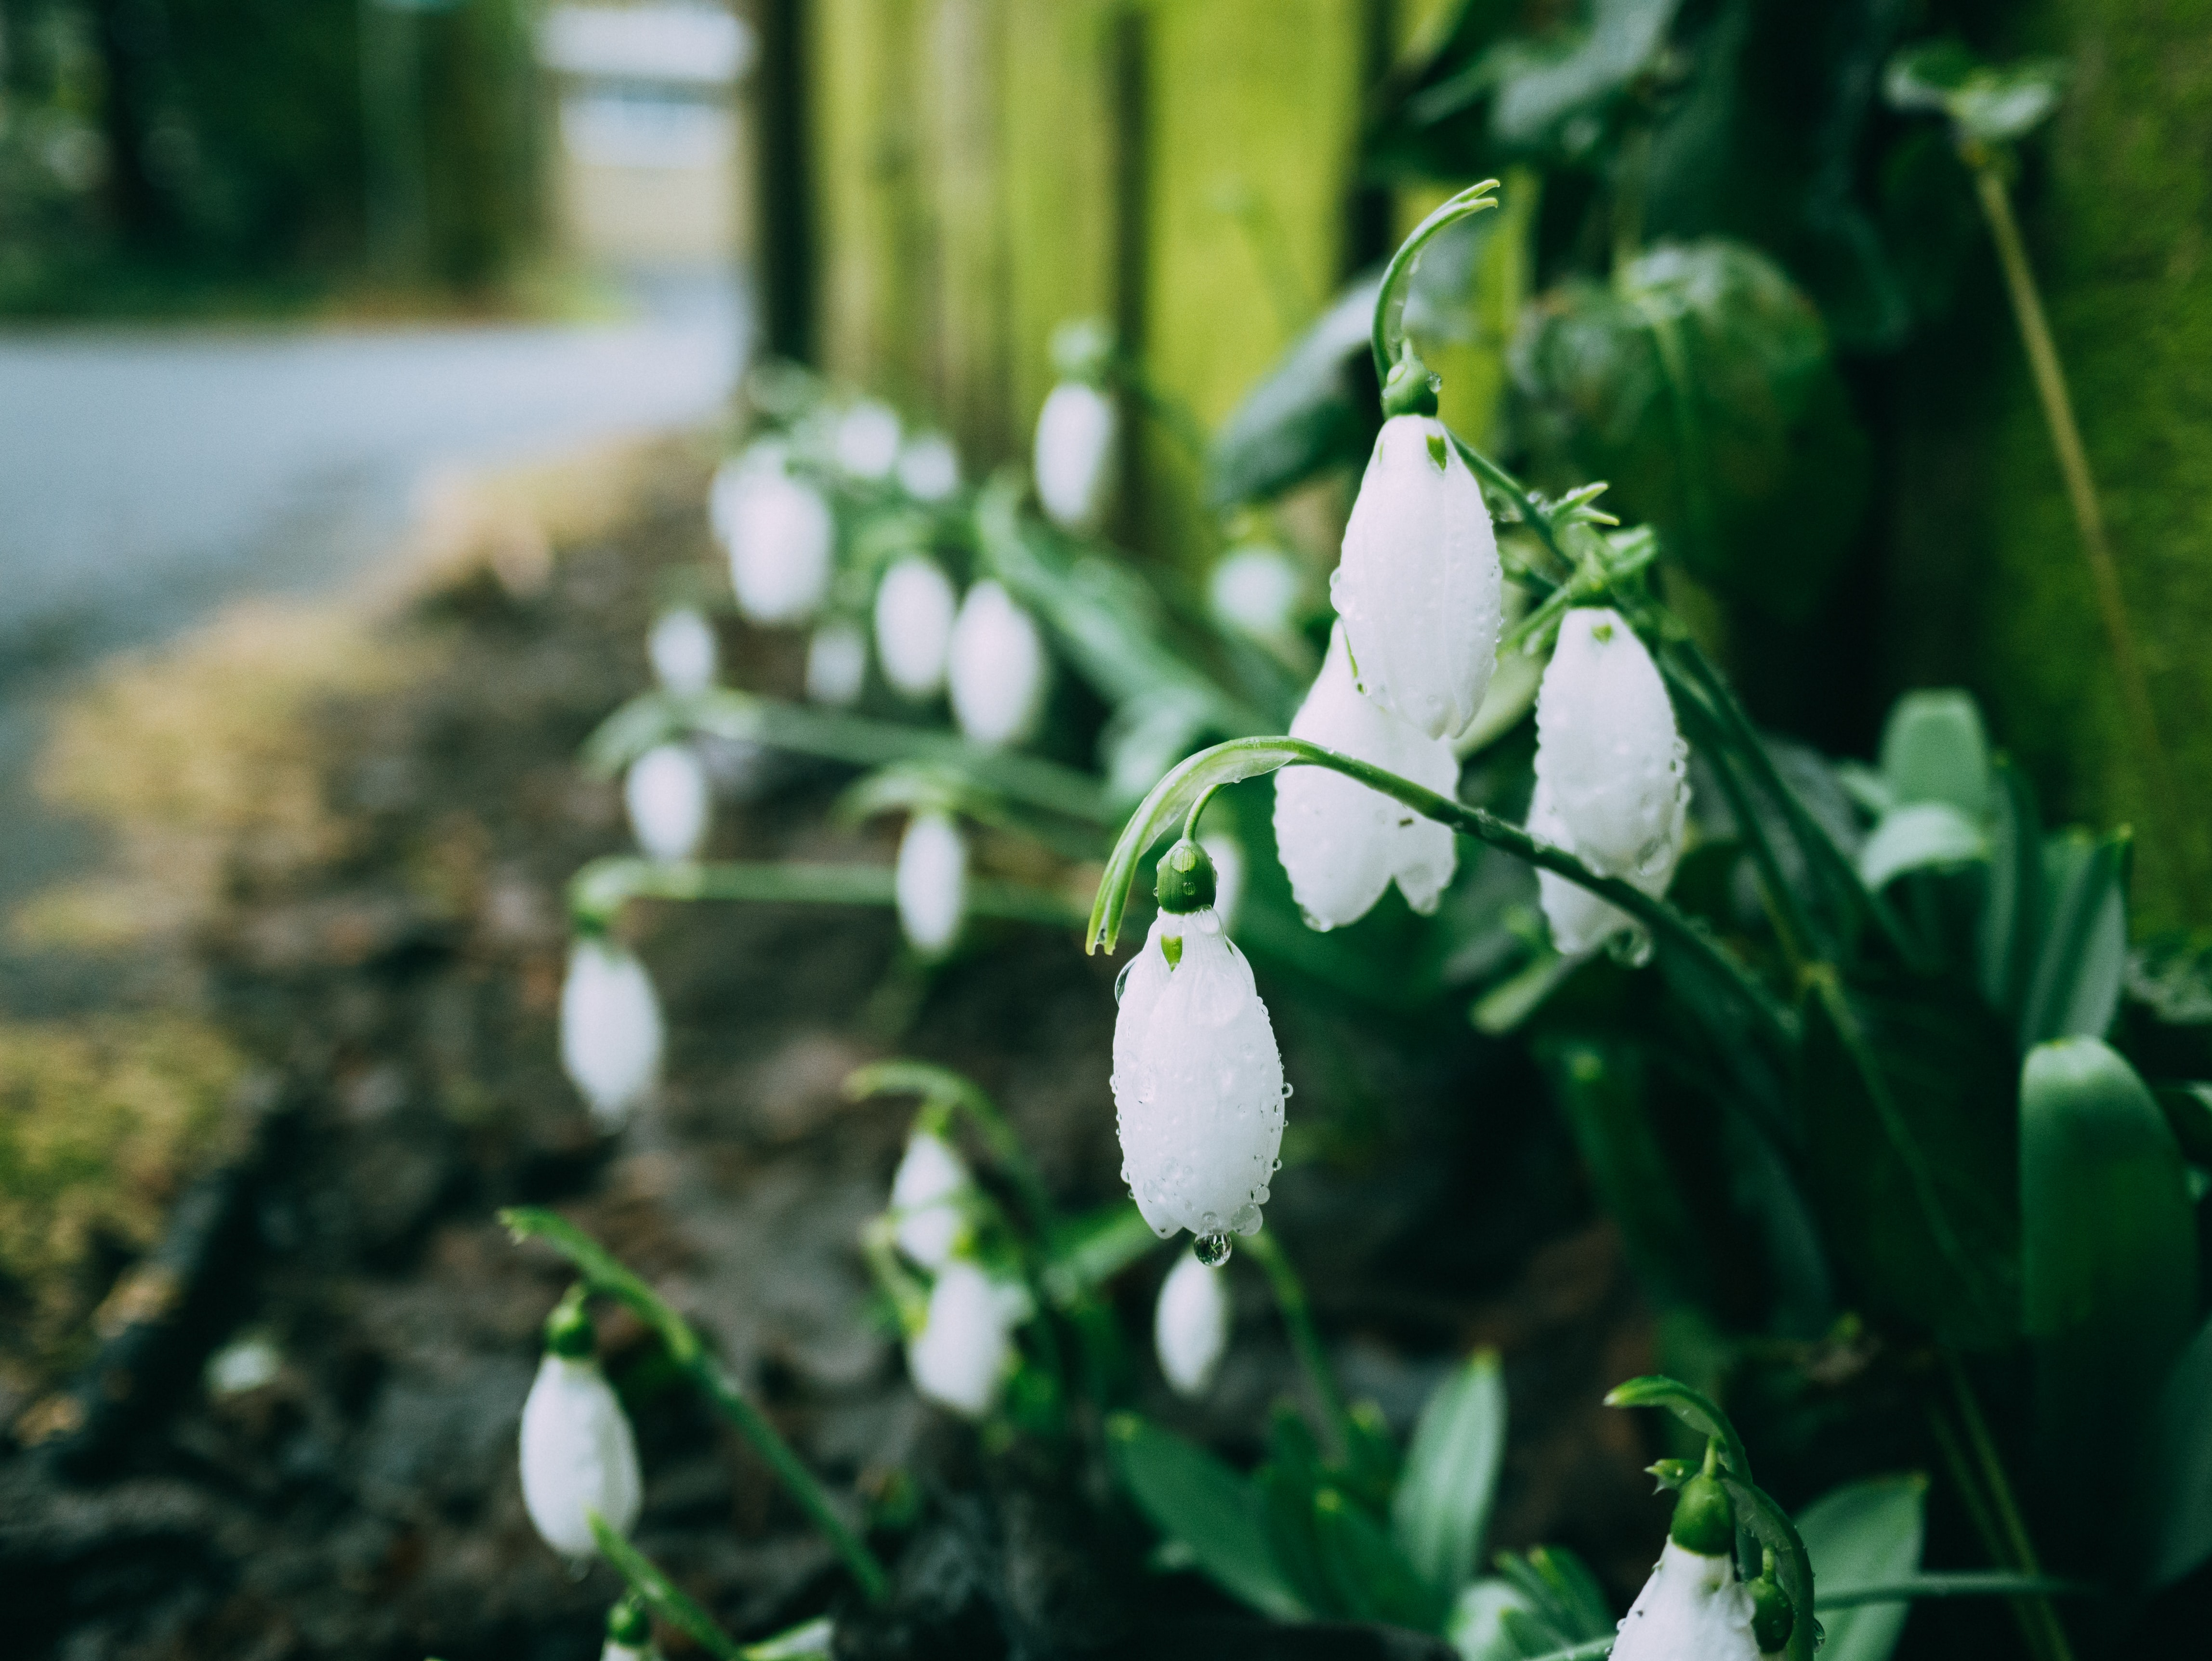 White snowdrop flowers near sidewalk in front of yellow fence in Spring